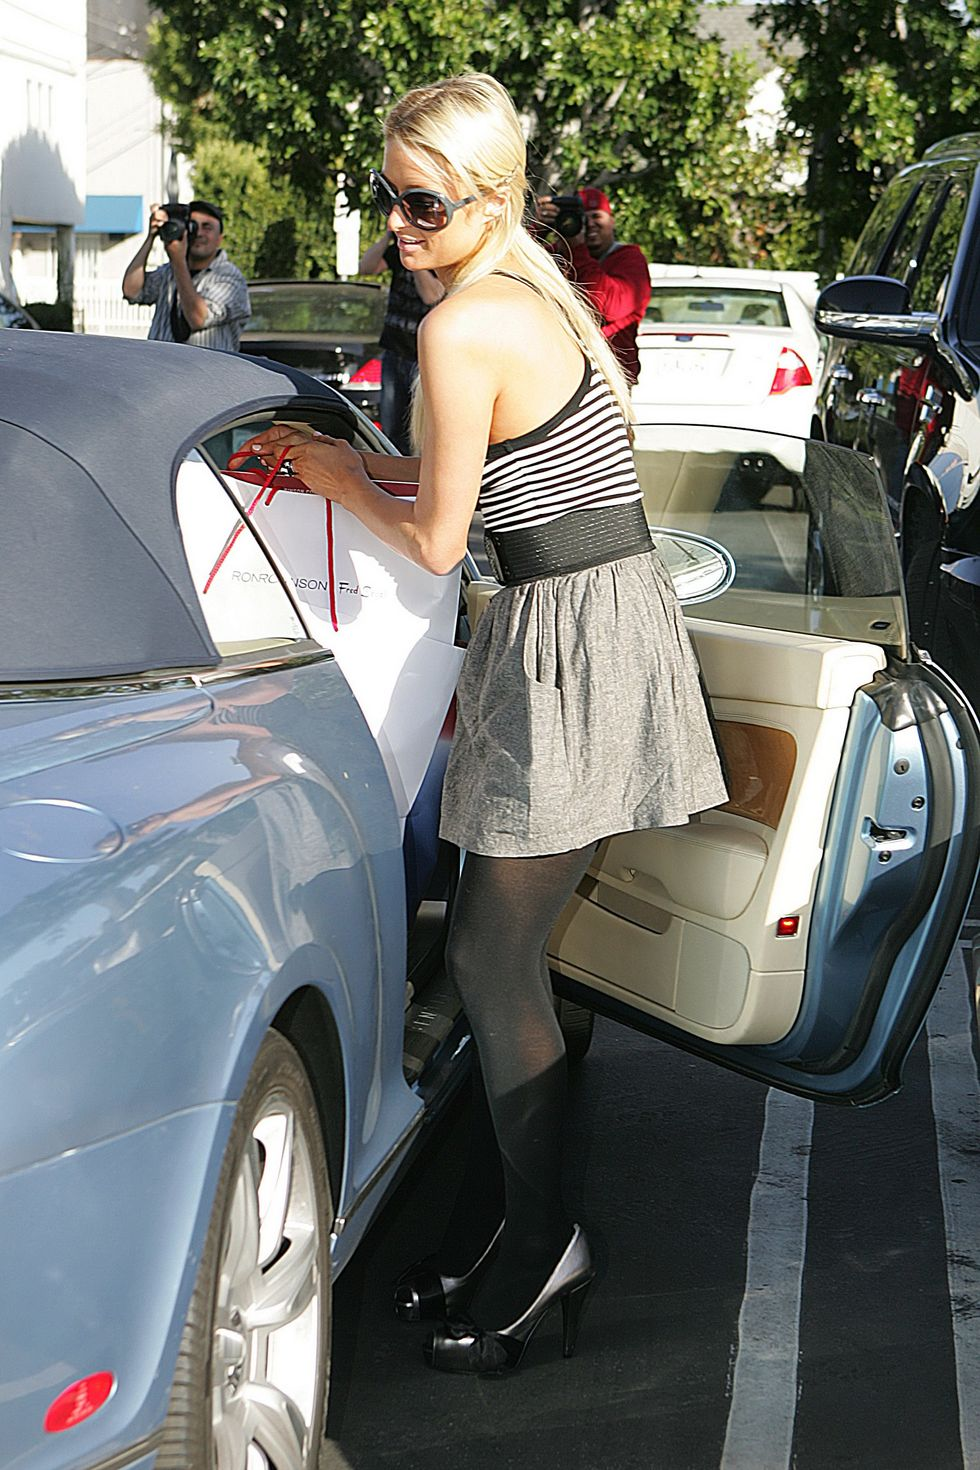 paris-hilton-candids-at-fred-segal-in-los-angeles-01